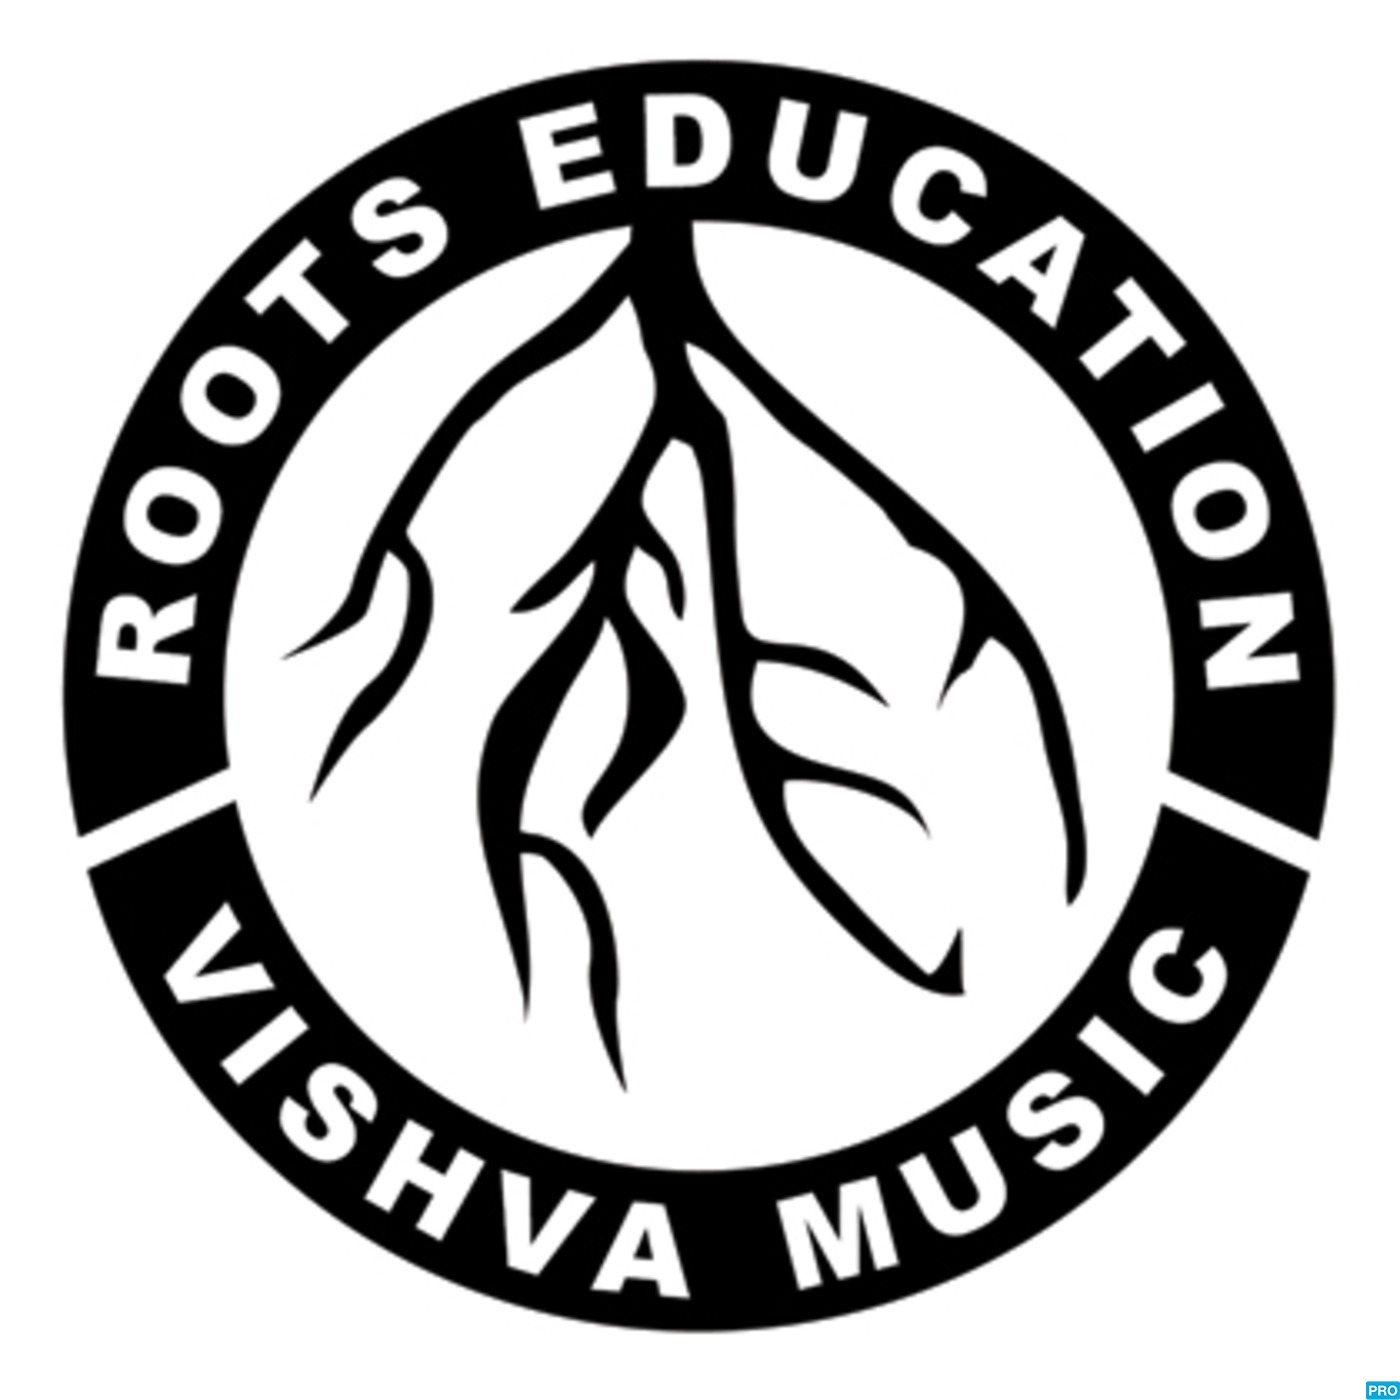 Roots Education